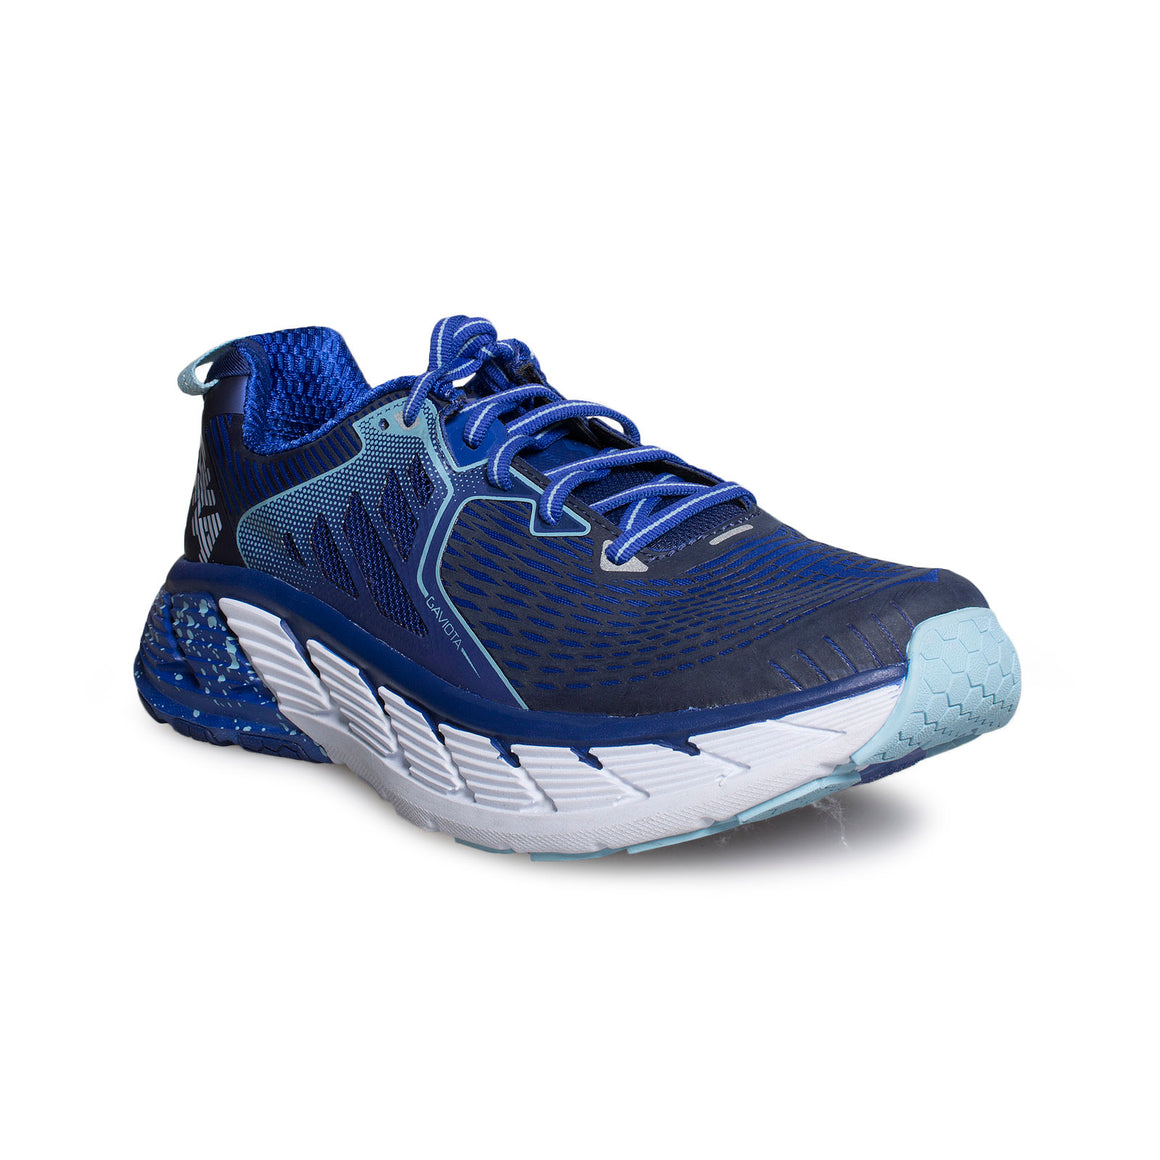 HOKA Gaviota Blueprint / Surf The Web Running Shoes - Women's